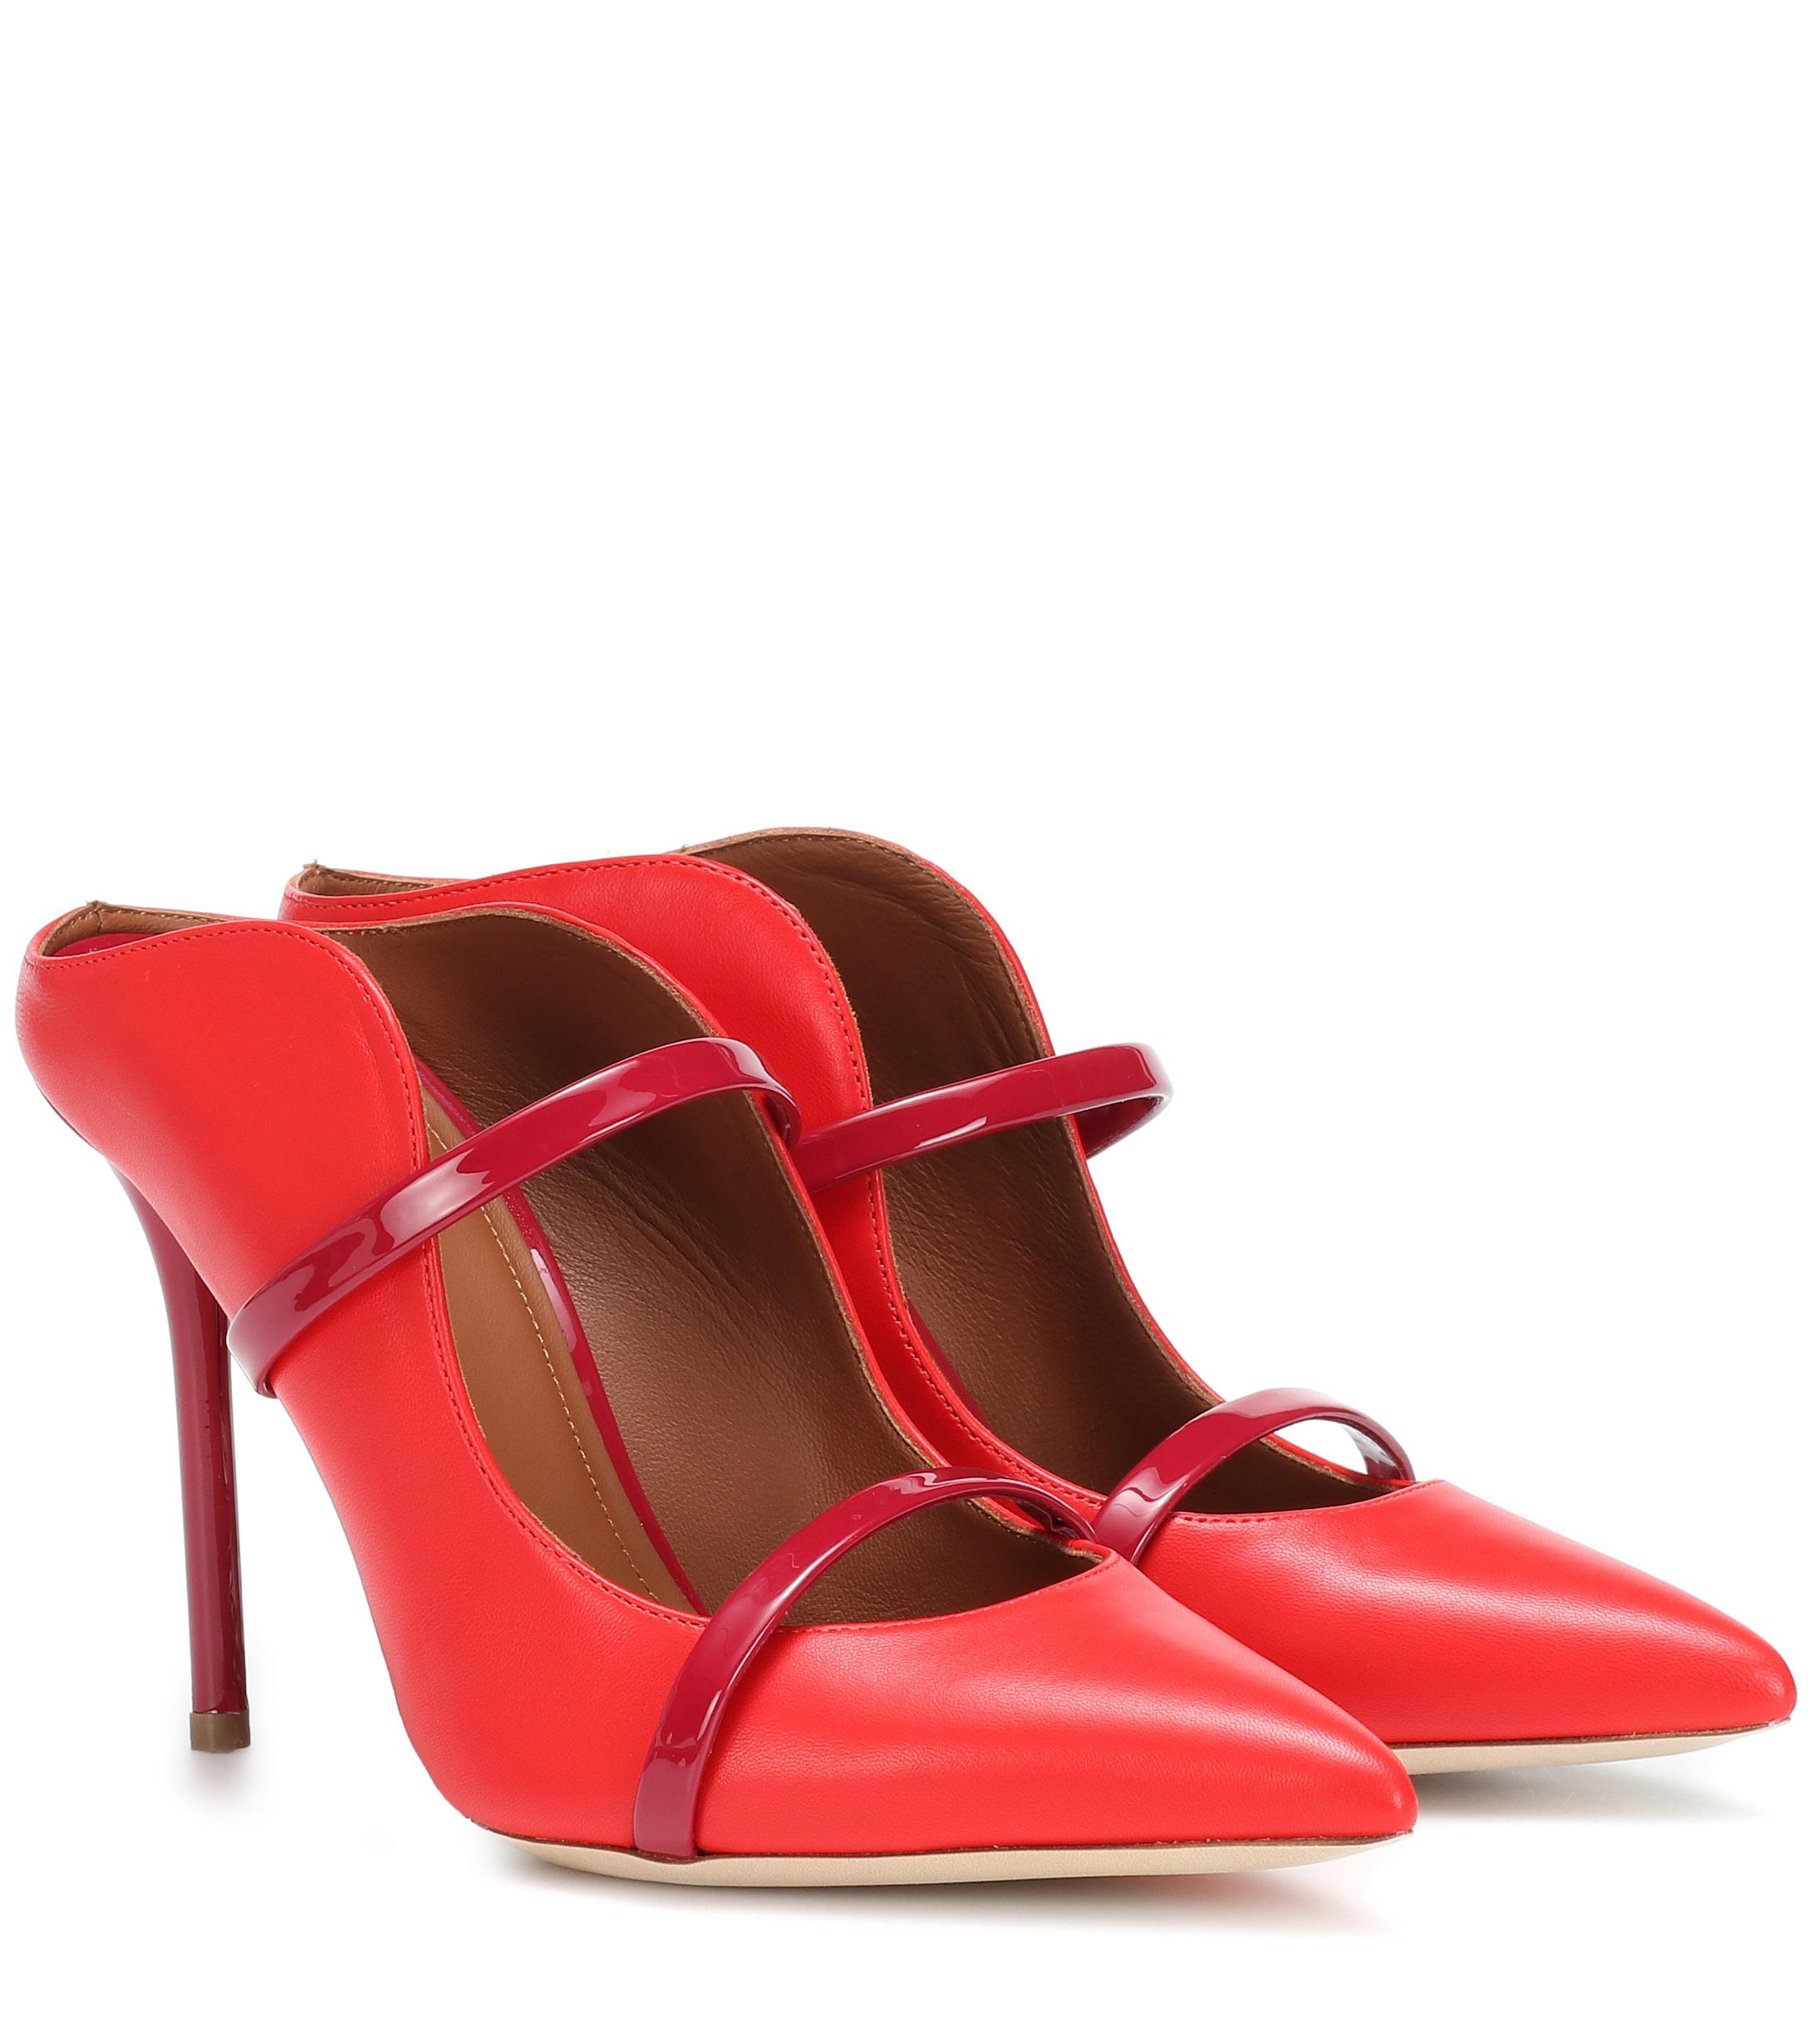 4819f23fd472 Malone Souliers Maureen 100 Leather Mules in Red - Lyst